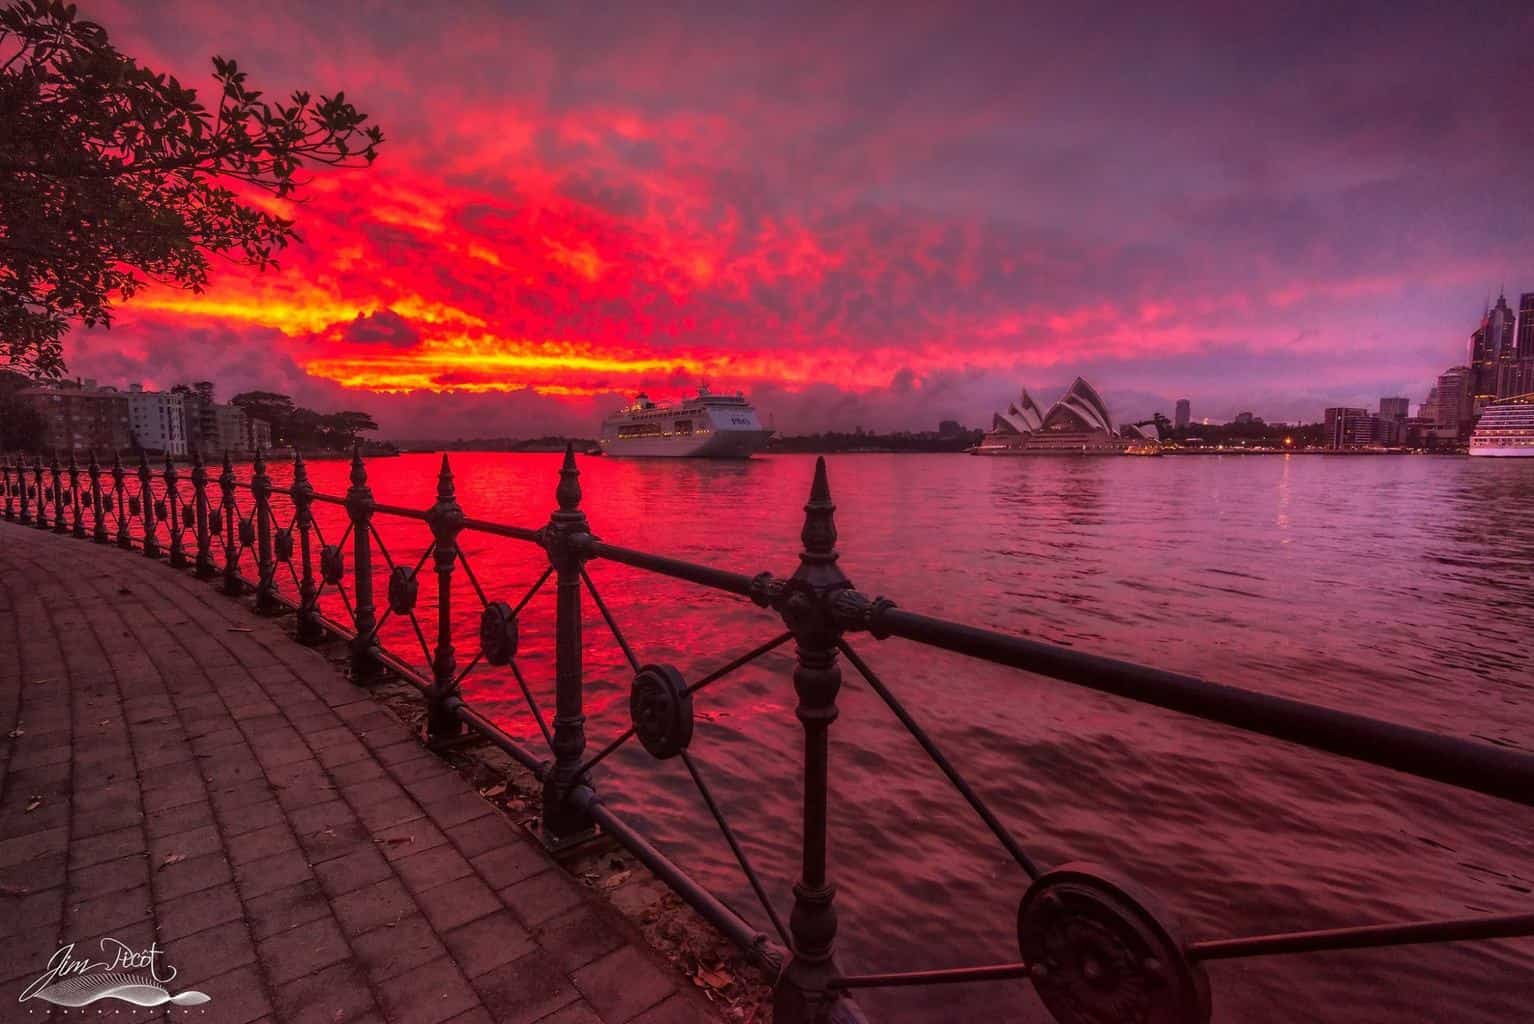 Beautiful sunrise today at Sydney Harbor, Australia.